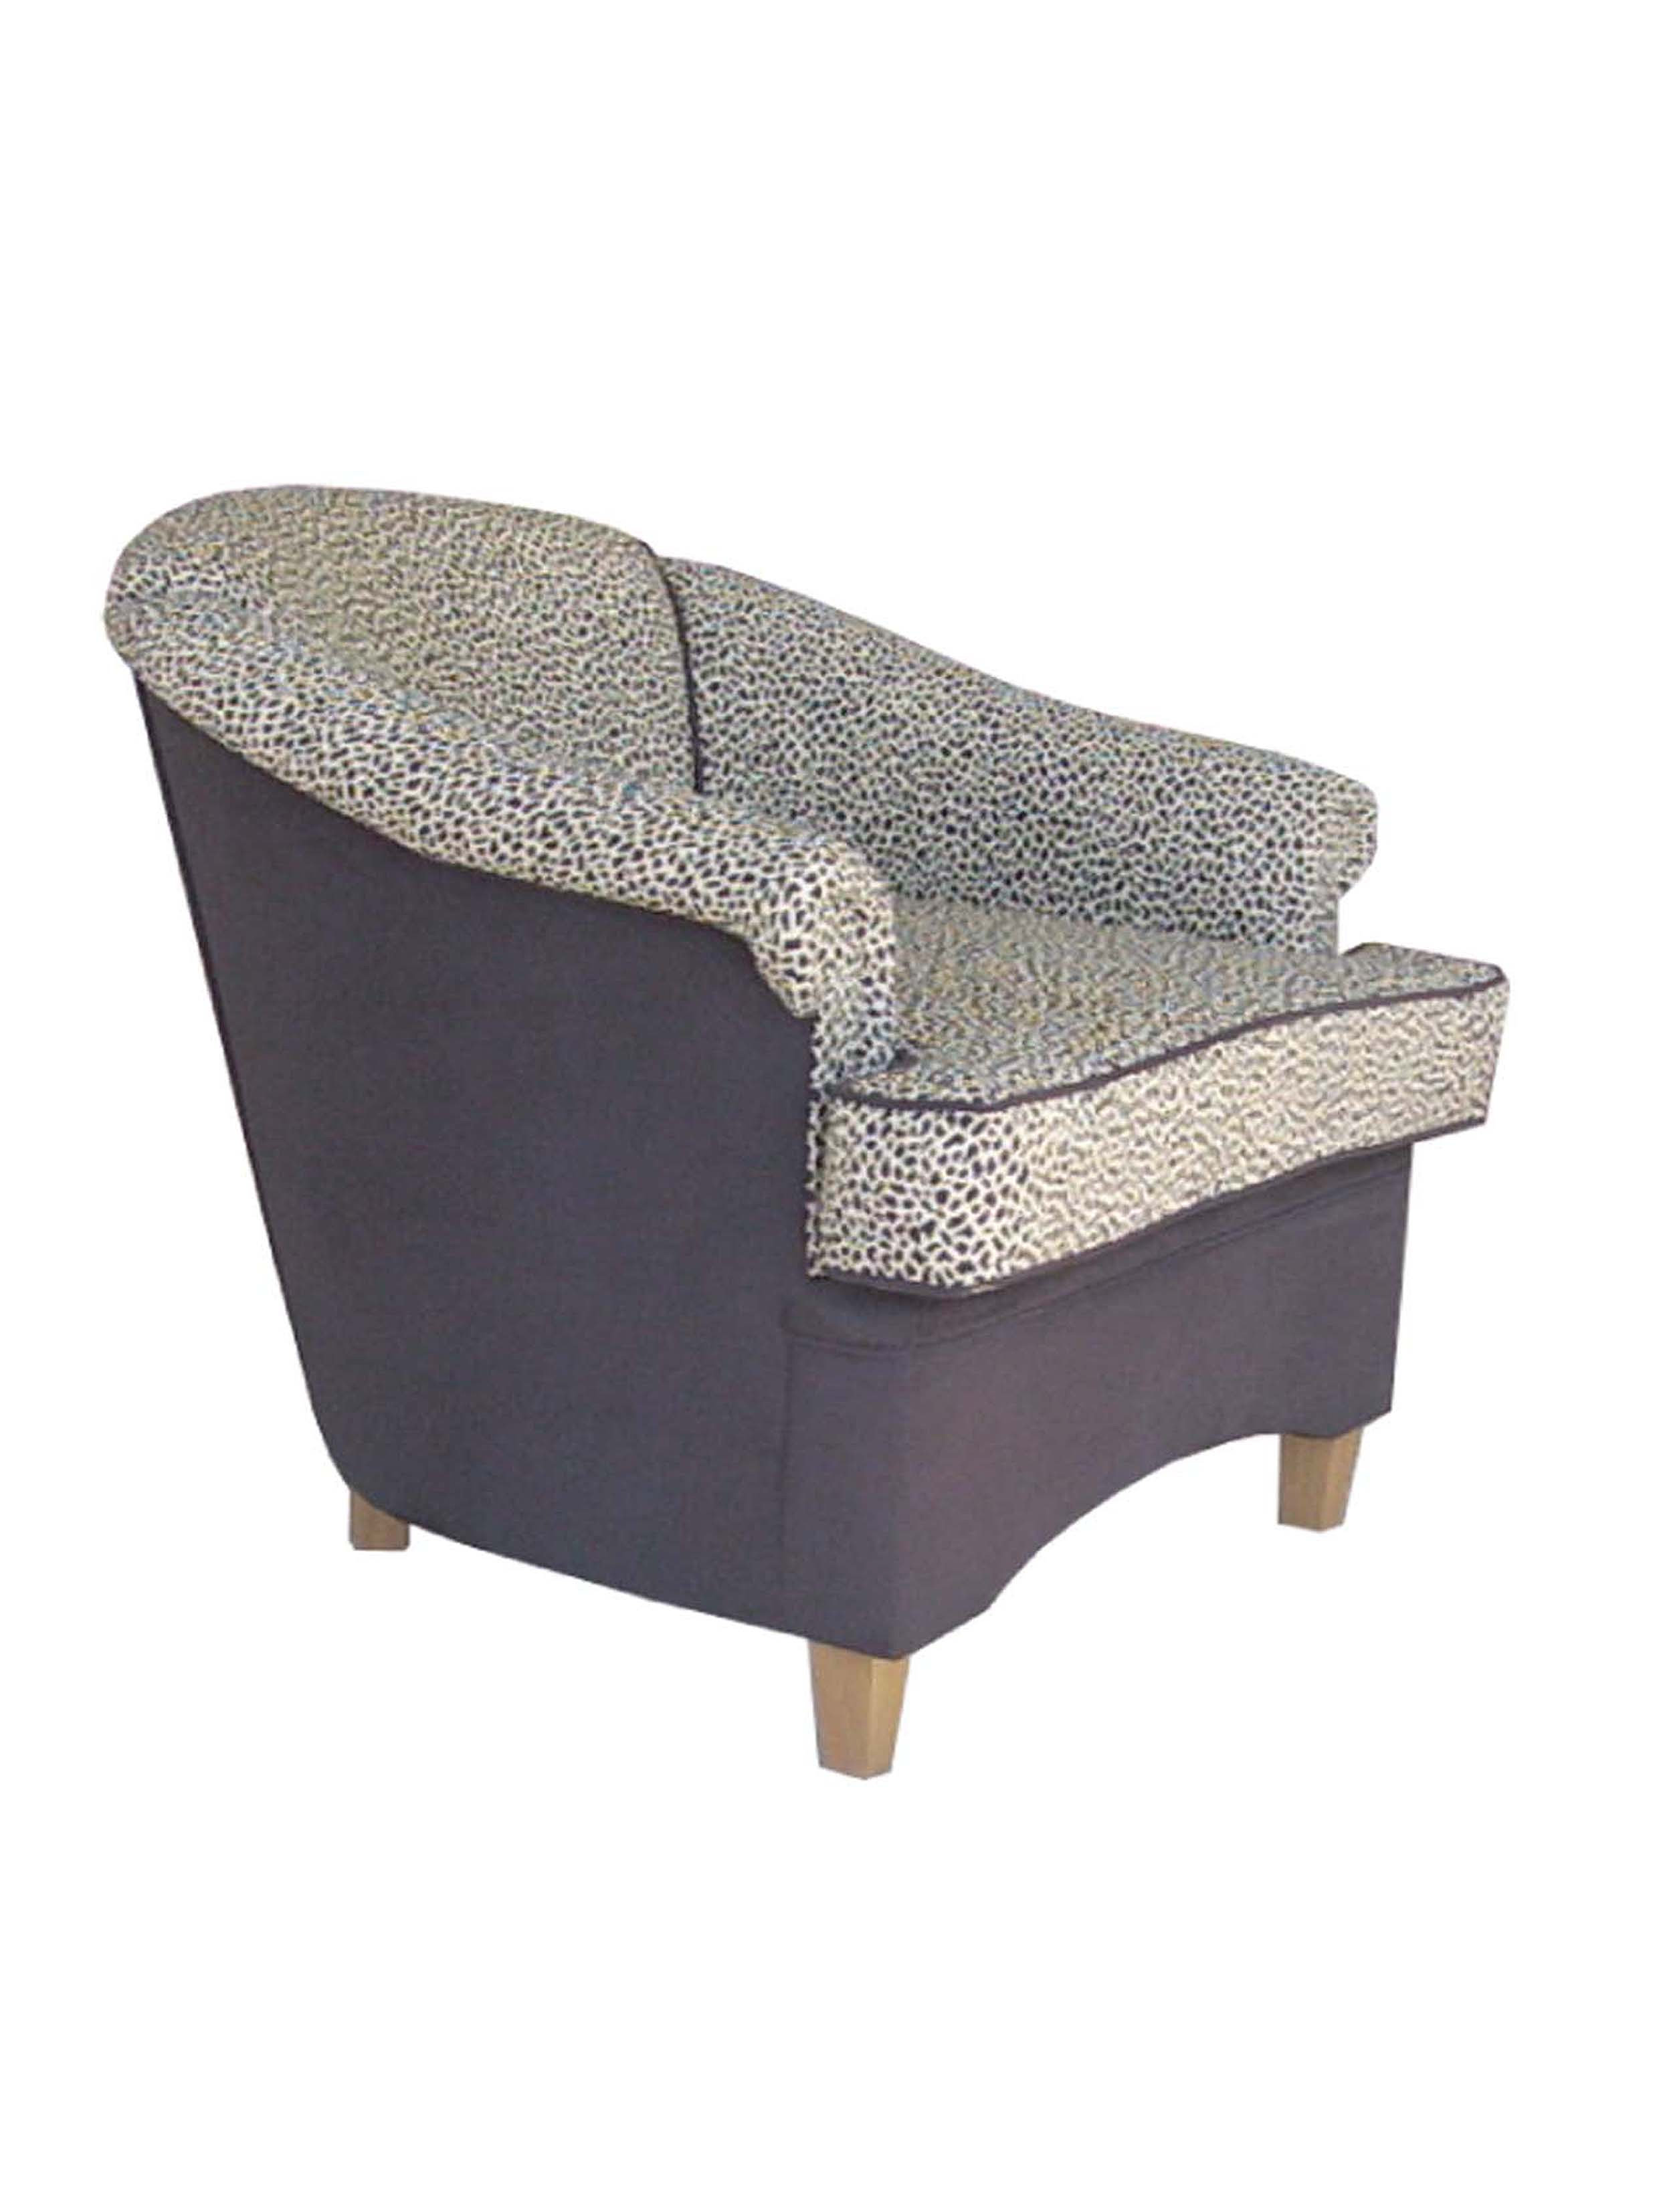 First Edition Upholstery Upholsterers Gold Coast Retro Chairs Custom Made Parkwood Tub Chair